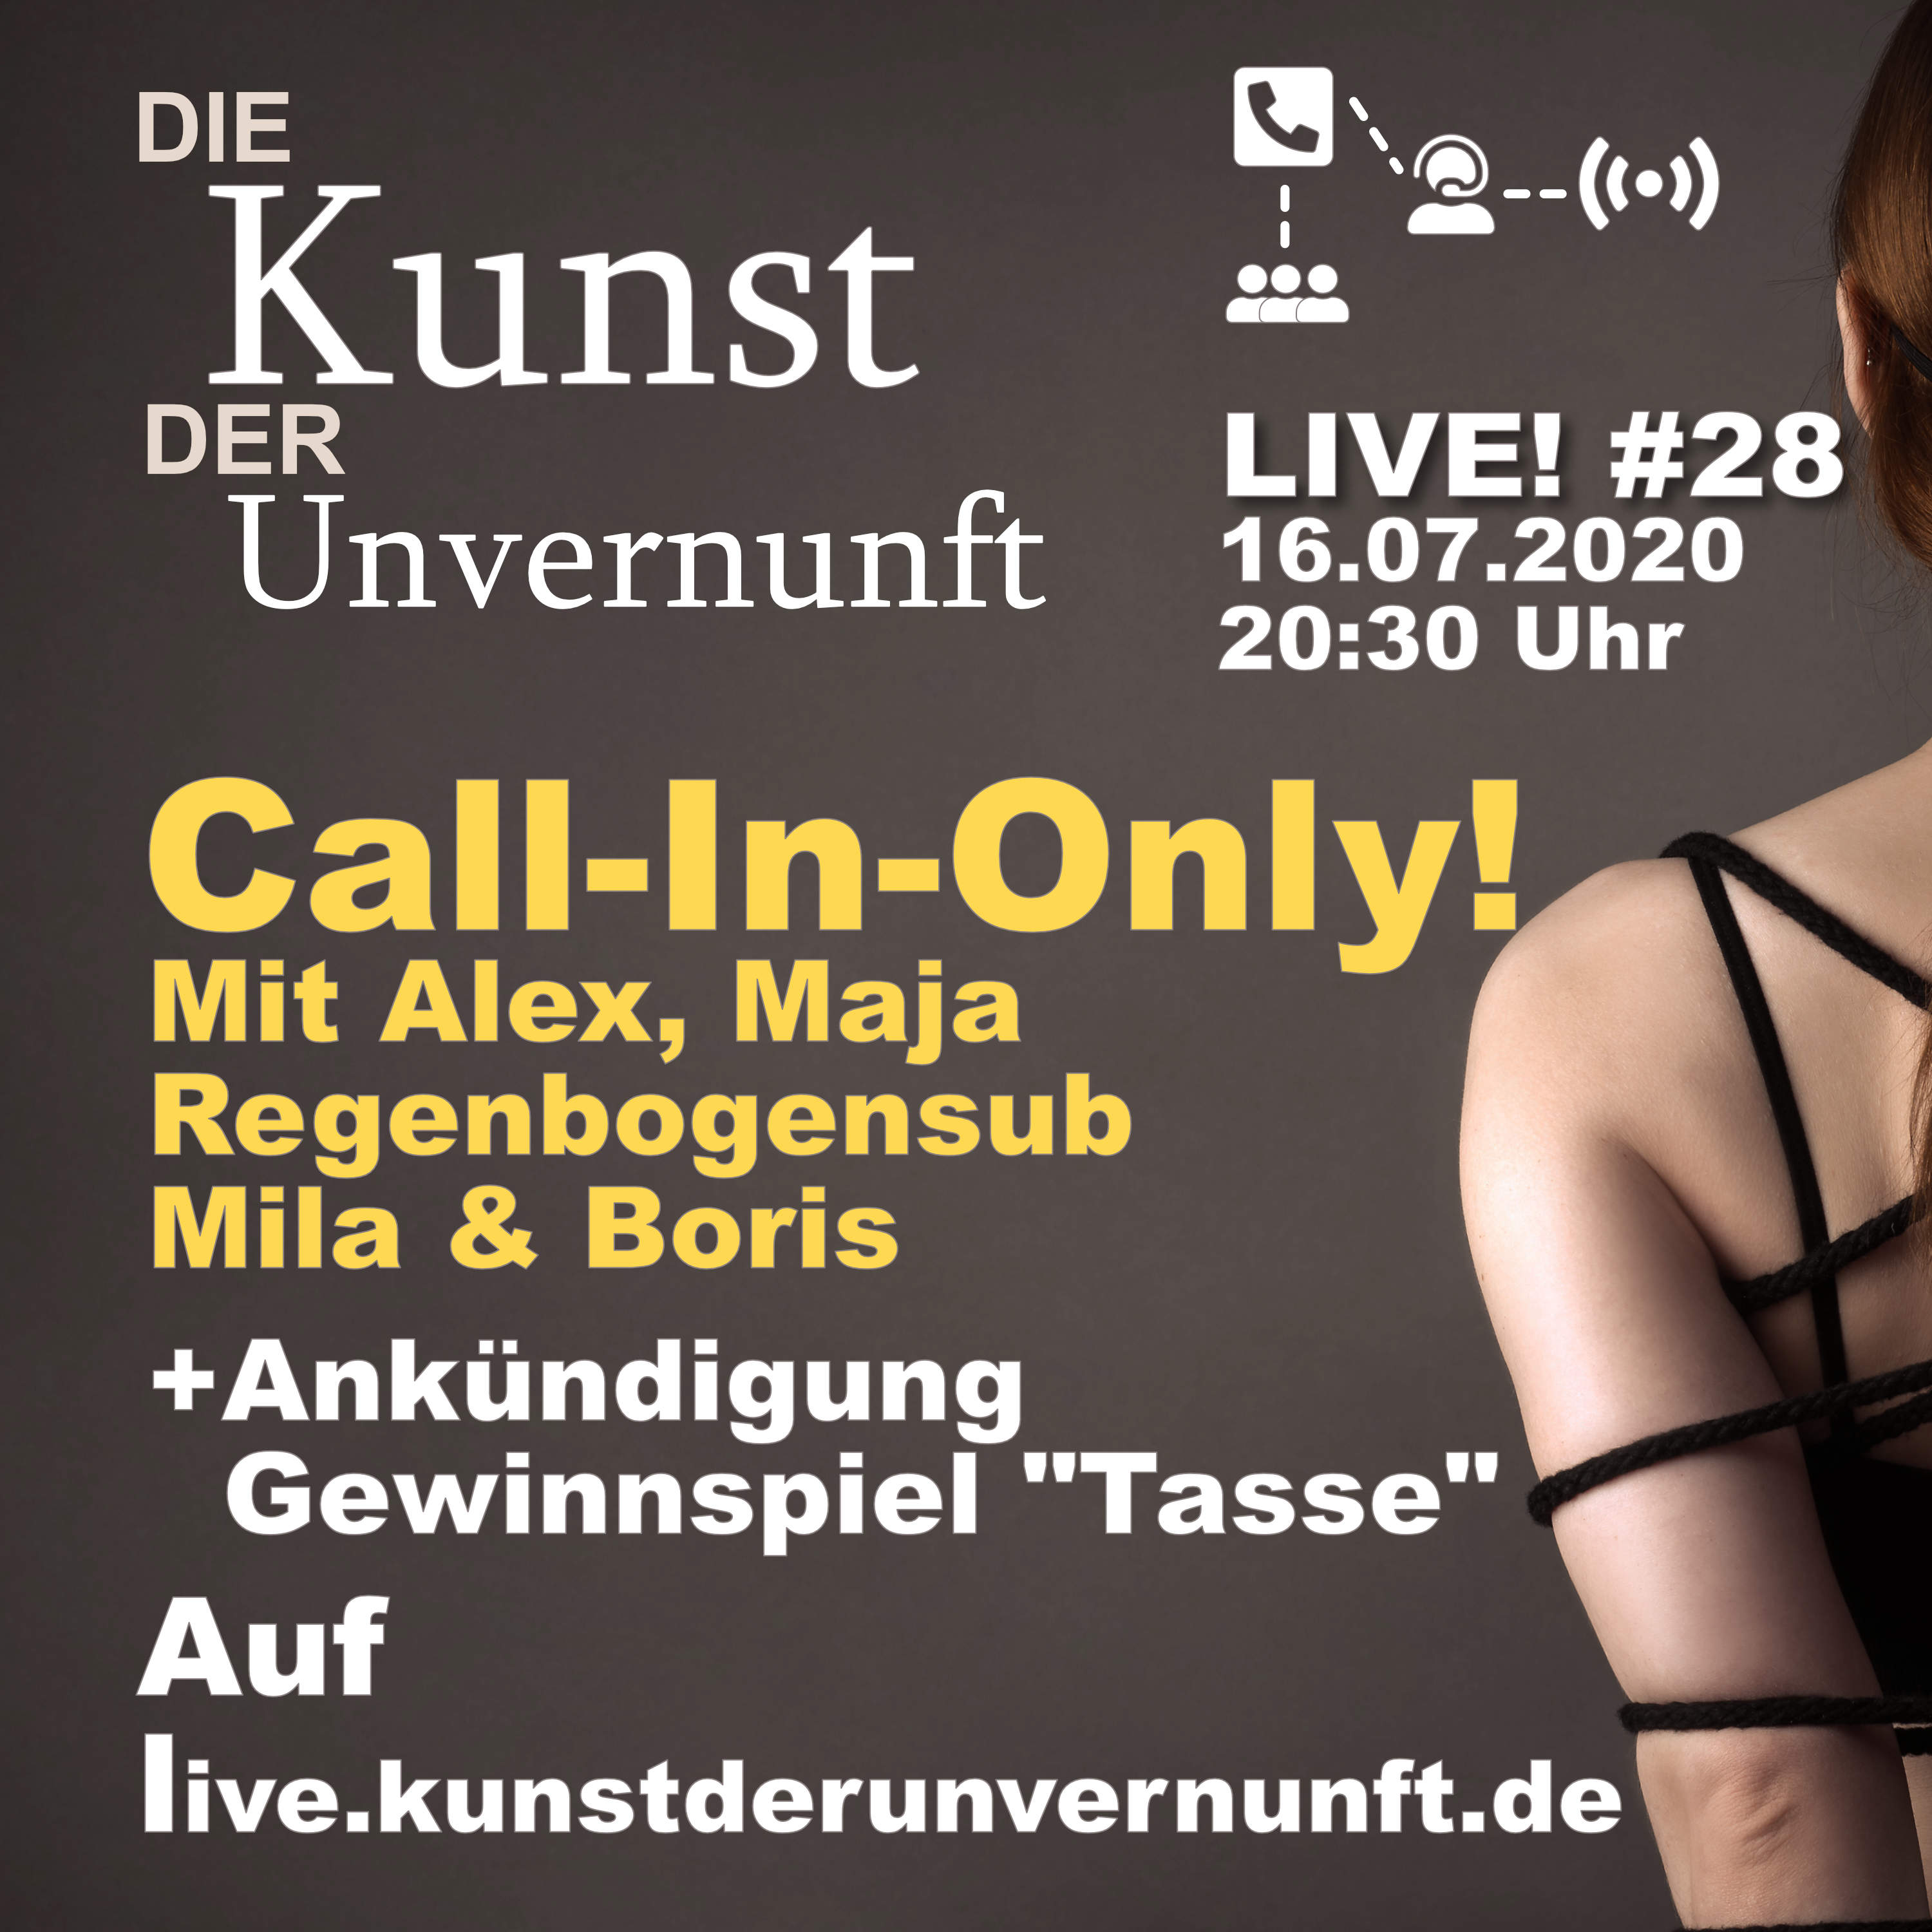 Unvernunft LIVE v. 16.07. - Massive Call-In-Only